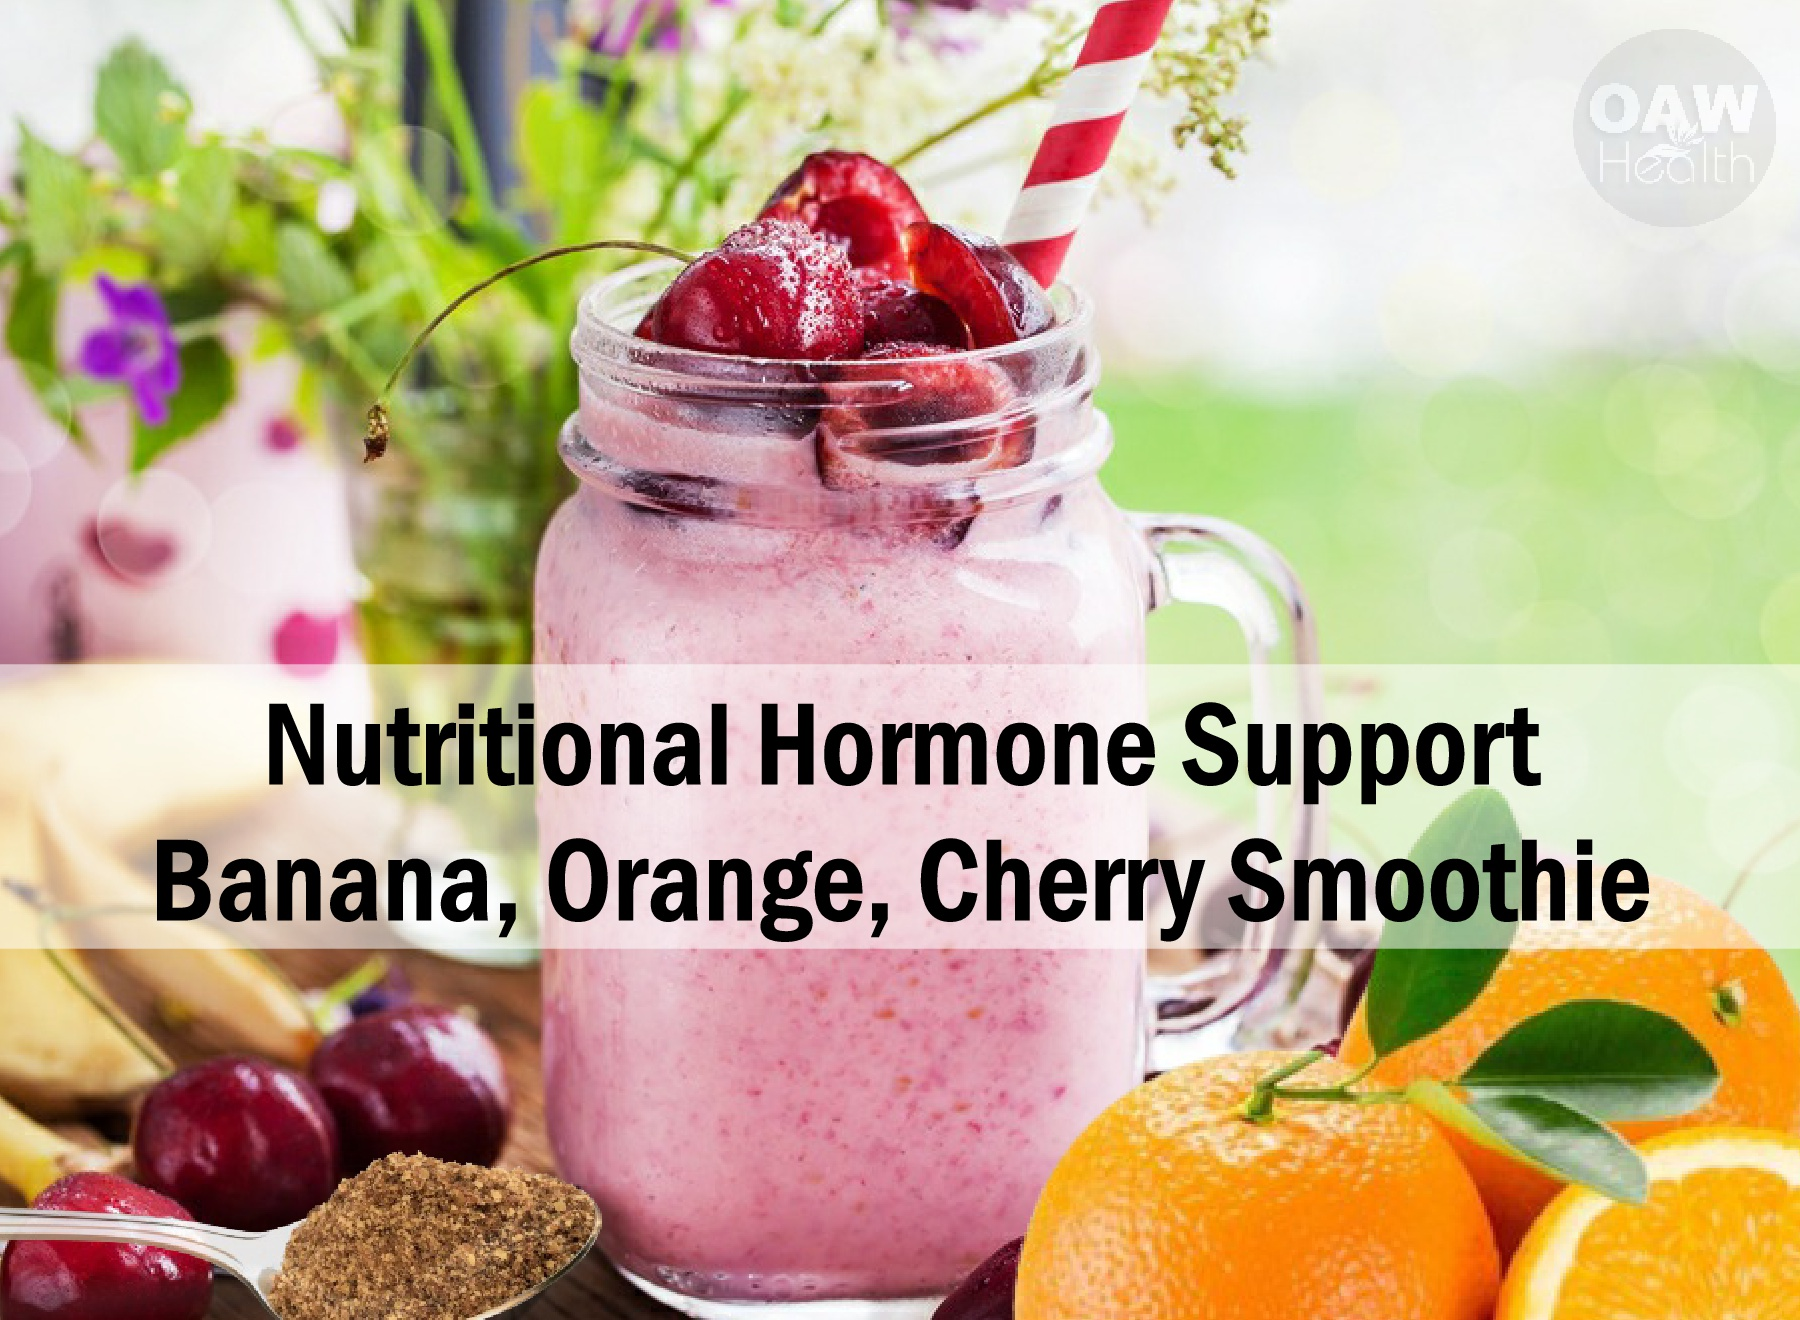 Nutritional Hormone Support: Banana, Orange, Cherry Smoothie